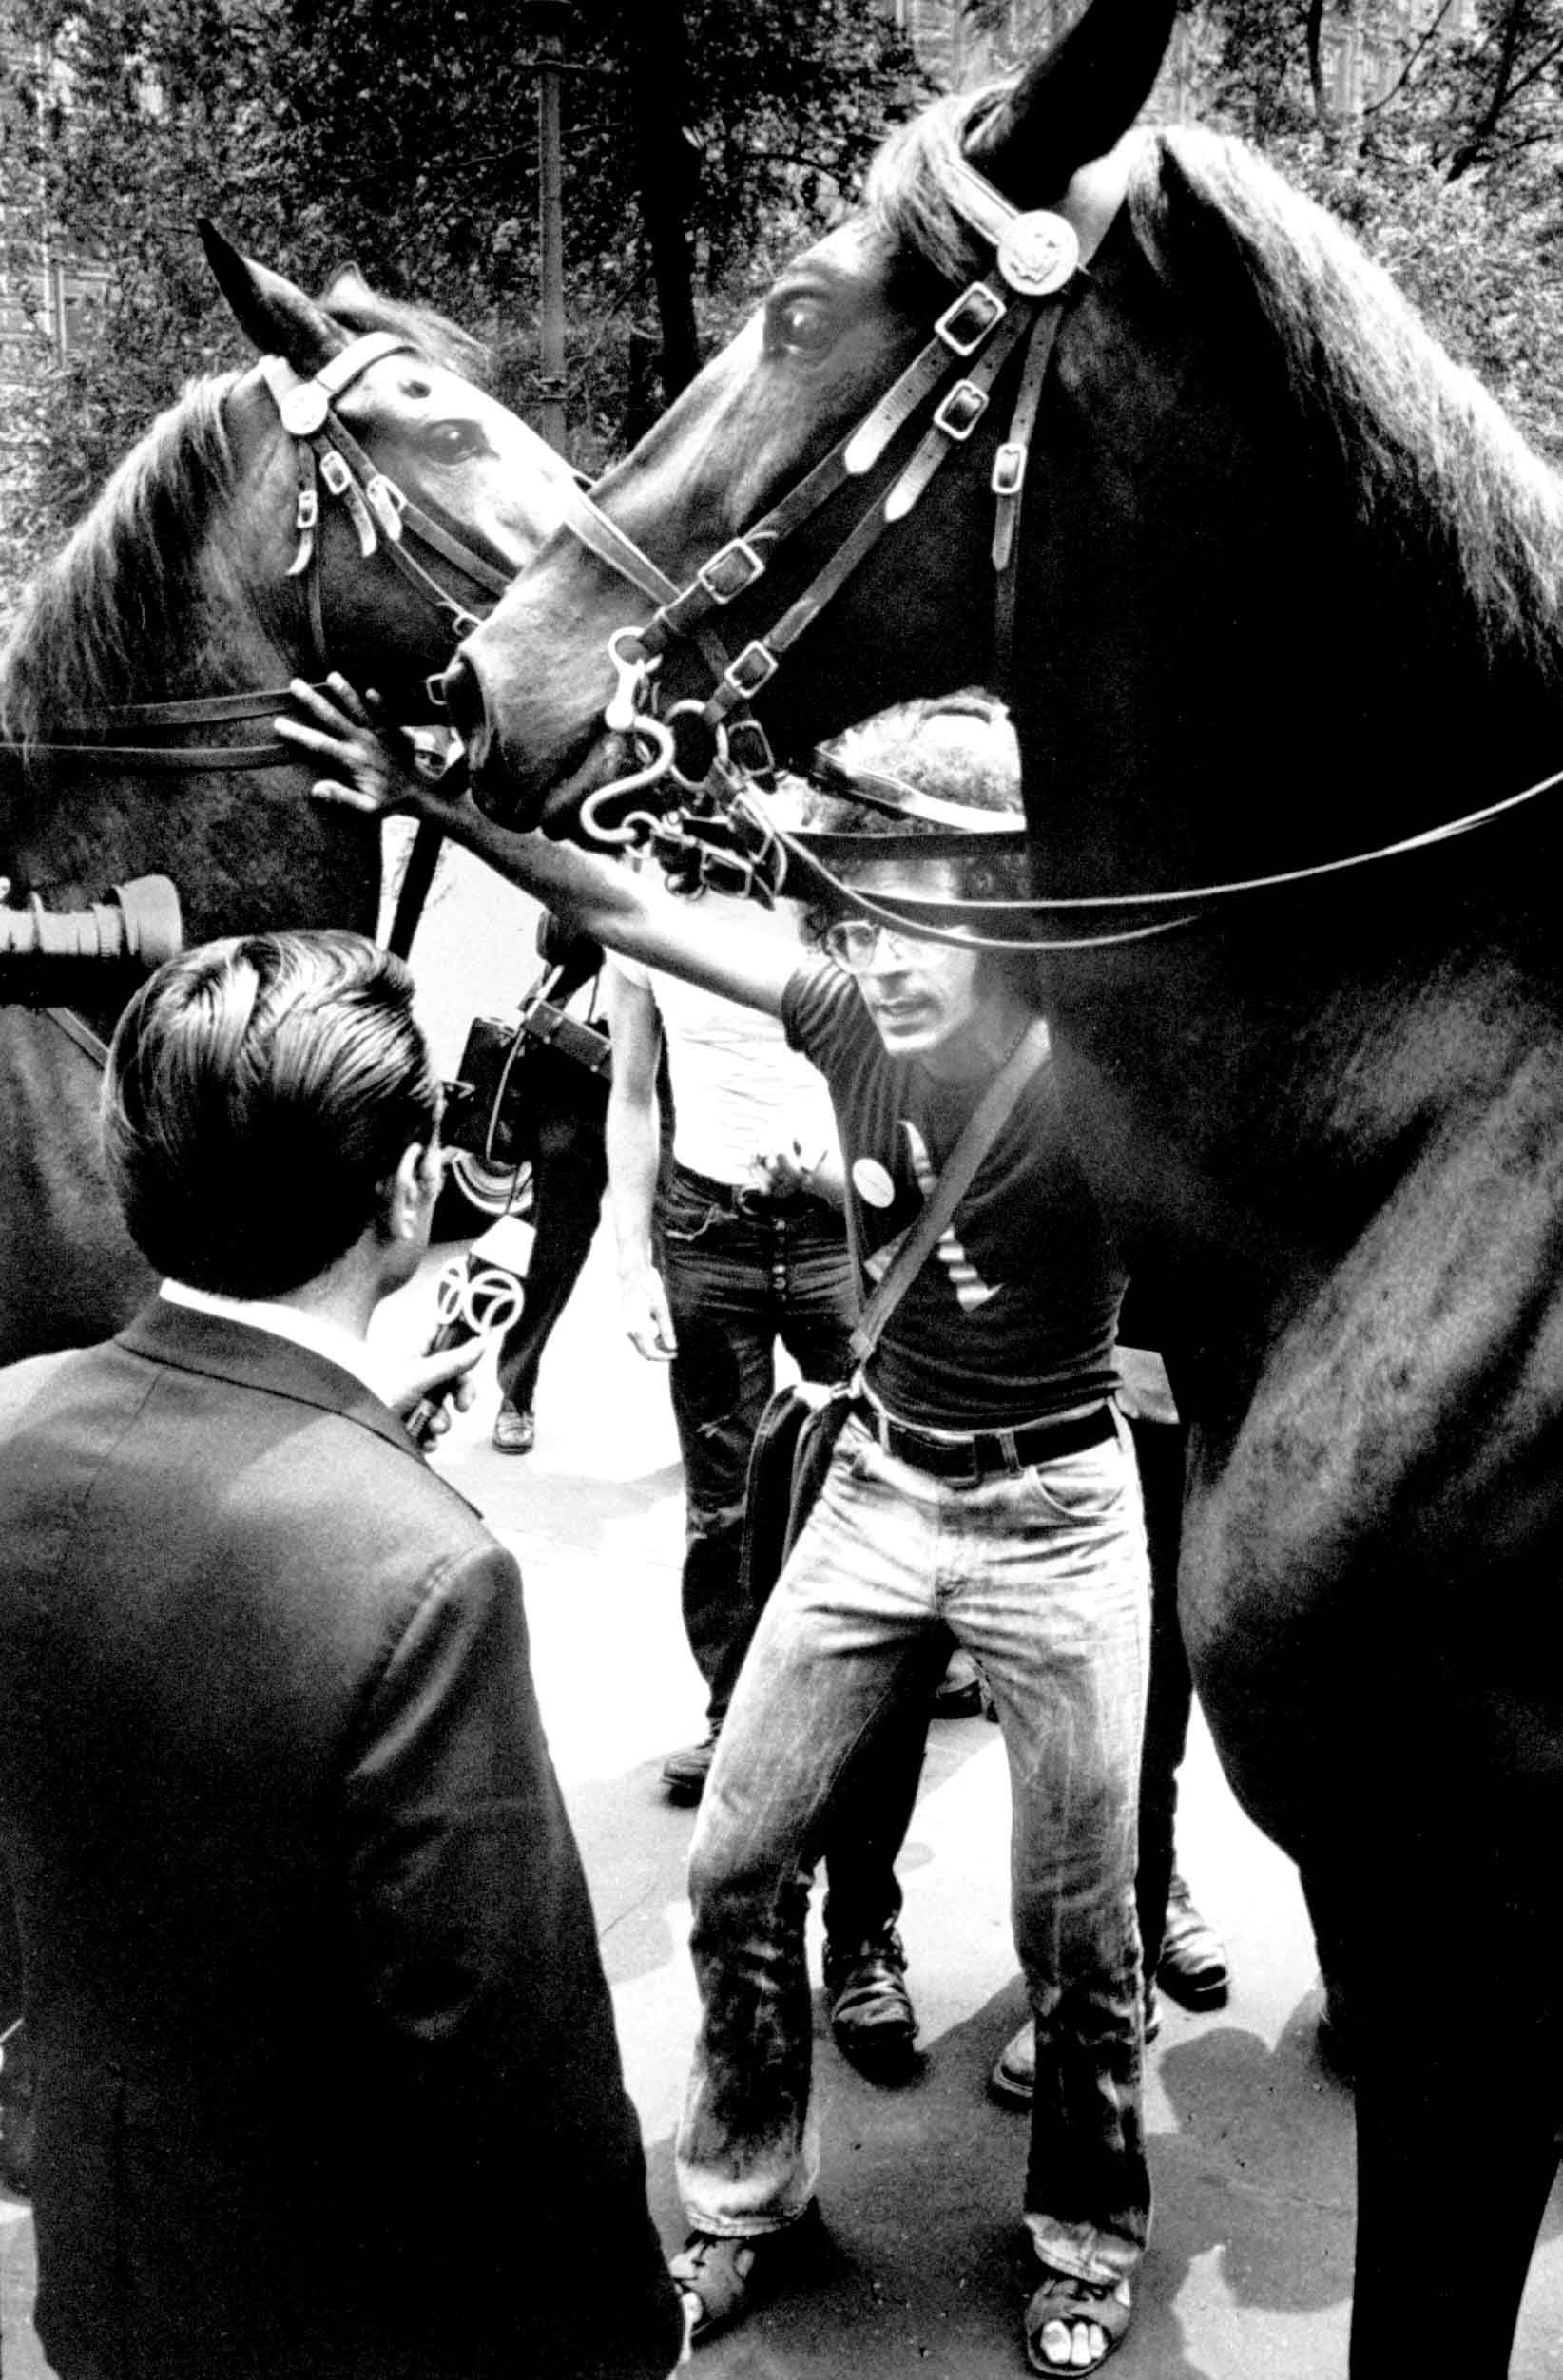 <b>Caption from LIFE</b> A homosexual activist steps between a pair of police horses to be interviewed during a New York demonstration. Militants often charge police brutality and welcome arrest for the sake of publicity. They also encourage press coverage of their protest actions.